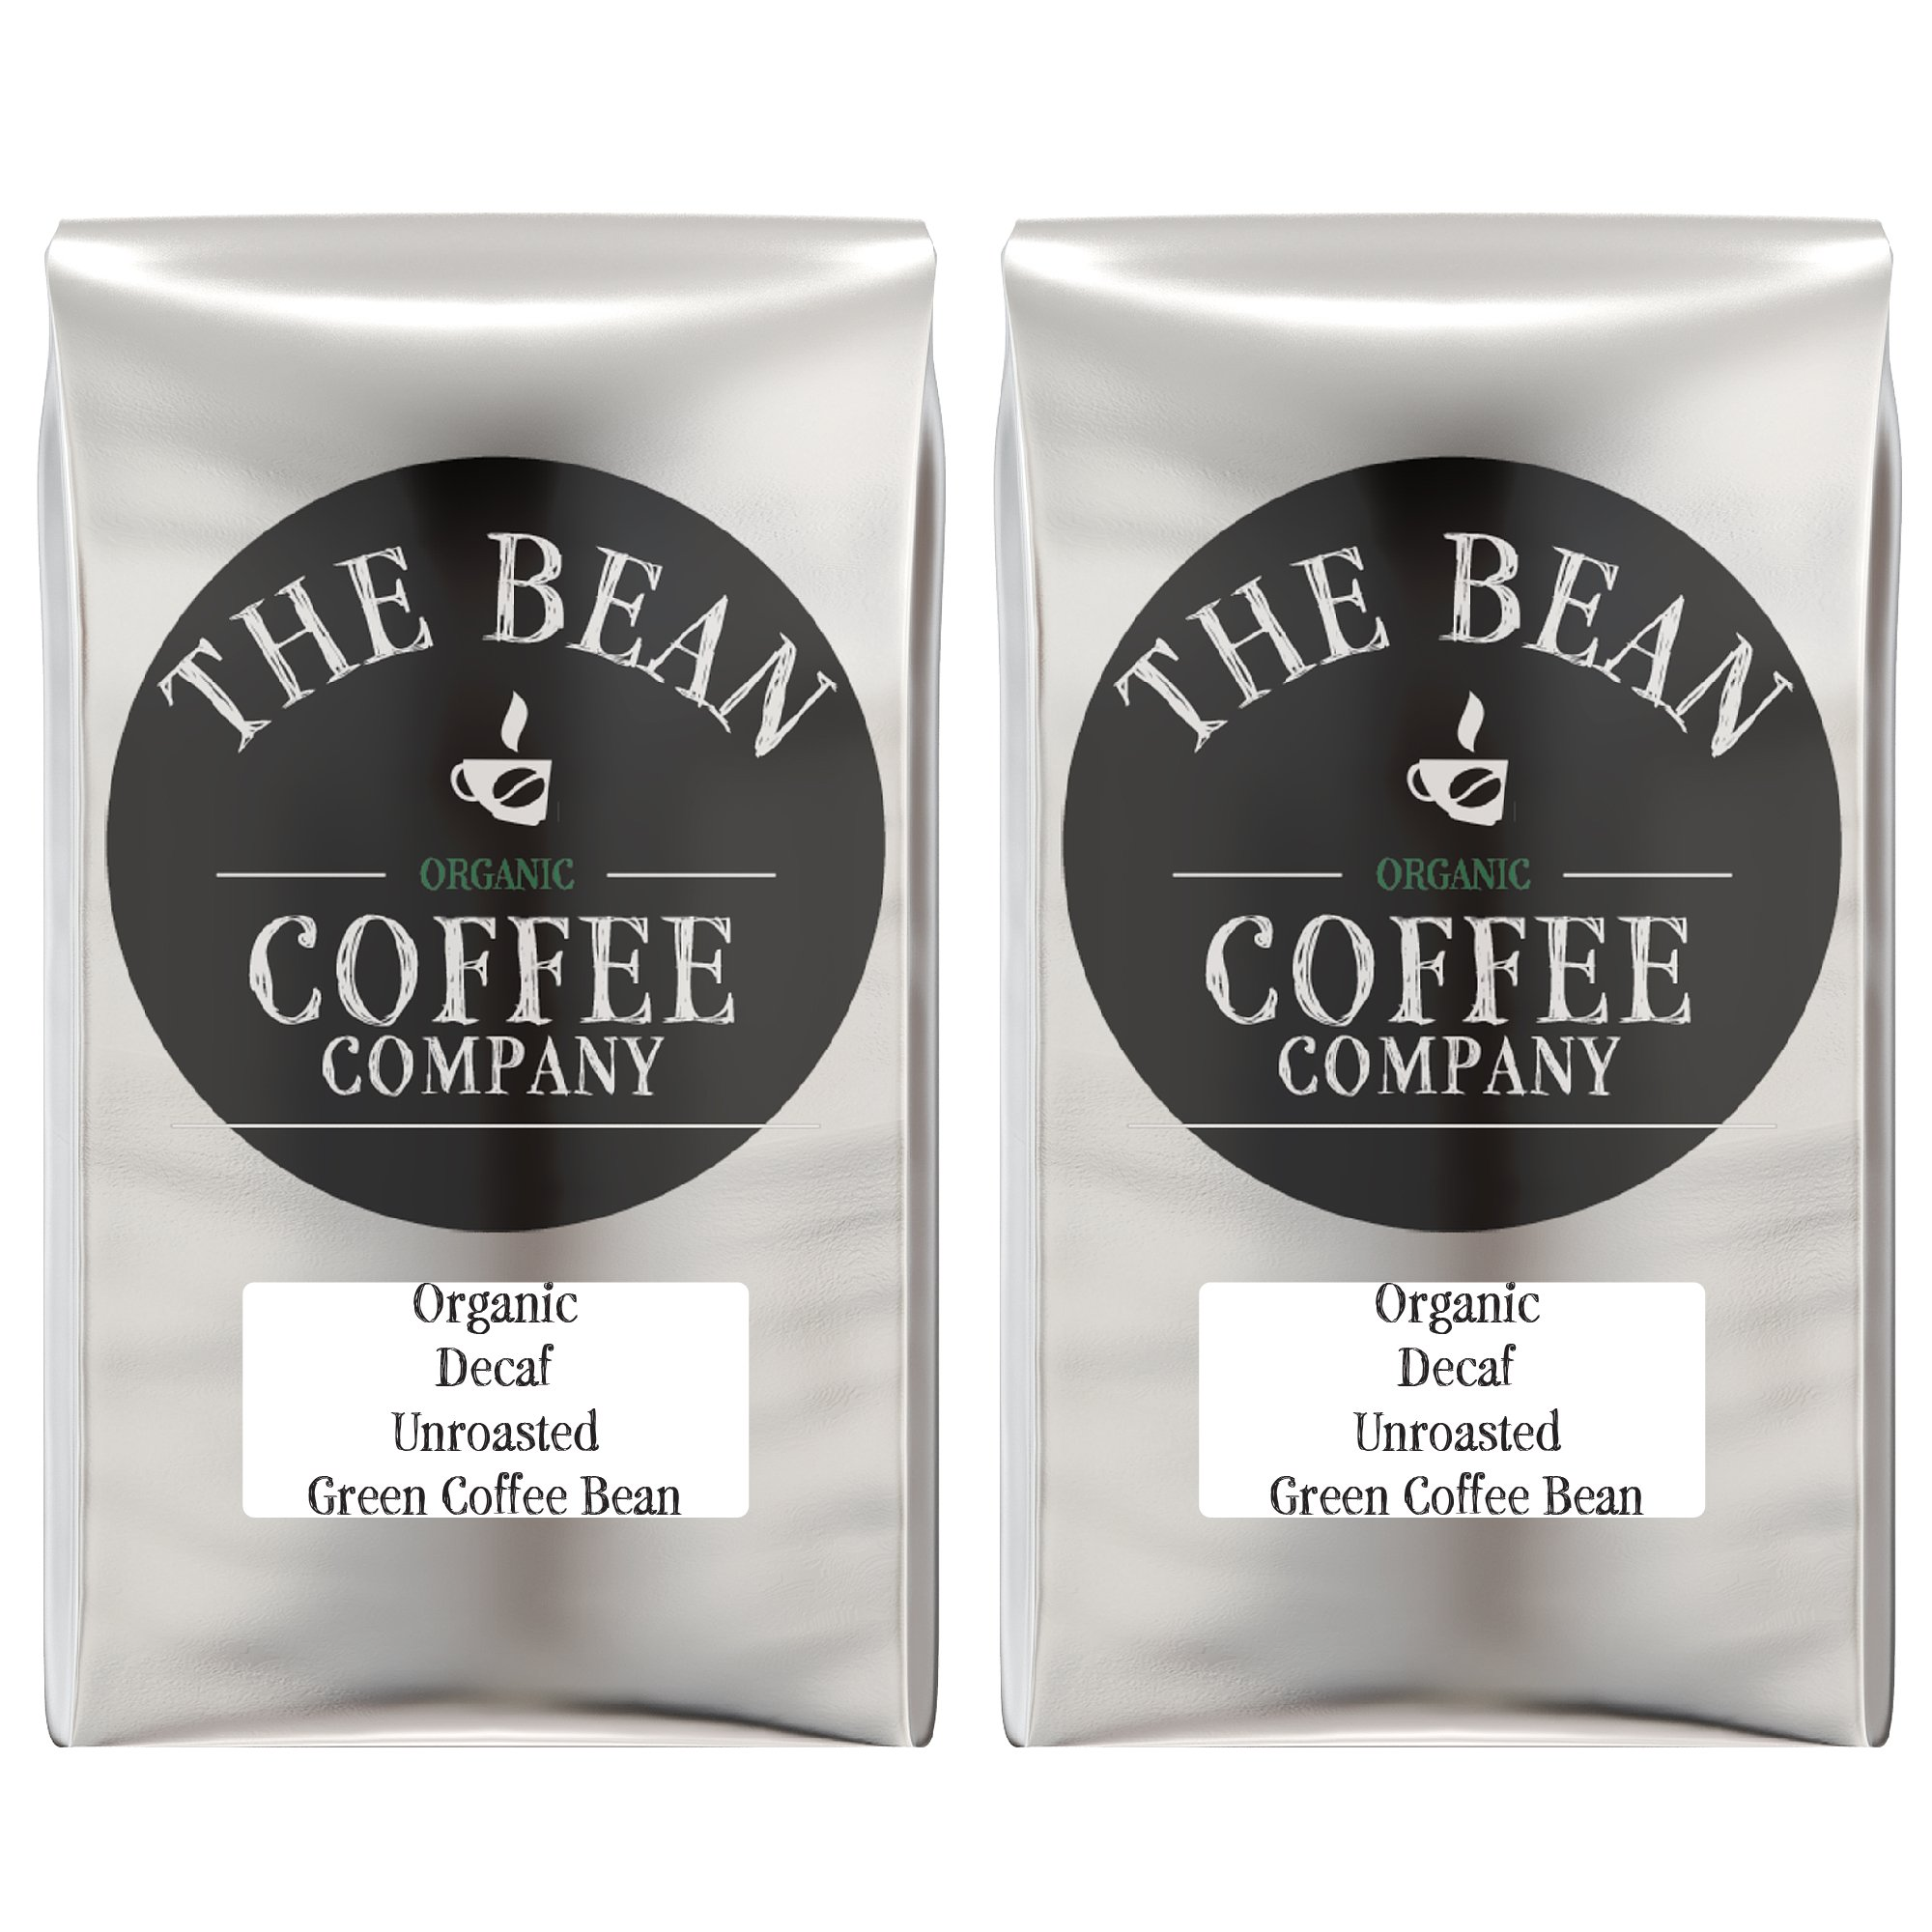 The Bean Coffee Company Organic Unroasted Green Coffee Beans, Decaf, 16-Ounce Bags (Pack of 2) by The Bean Coffee Company